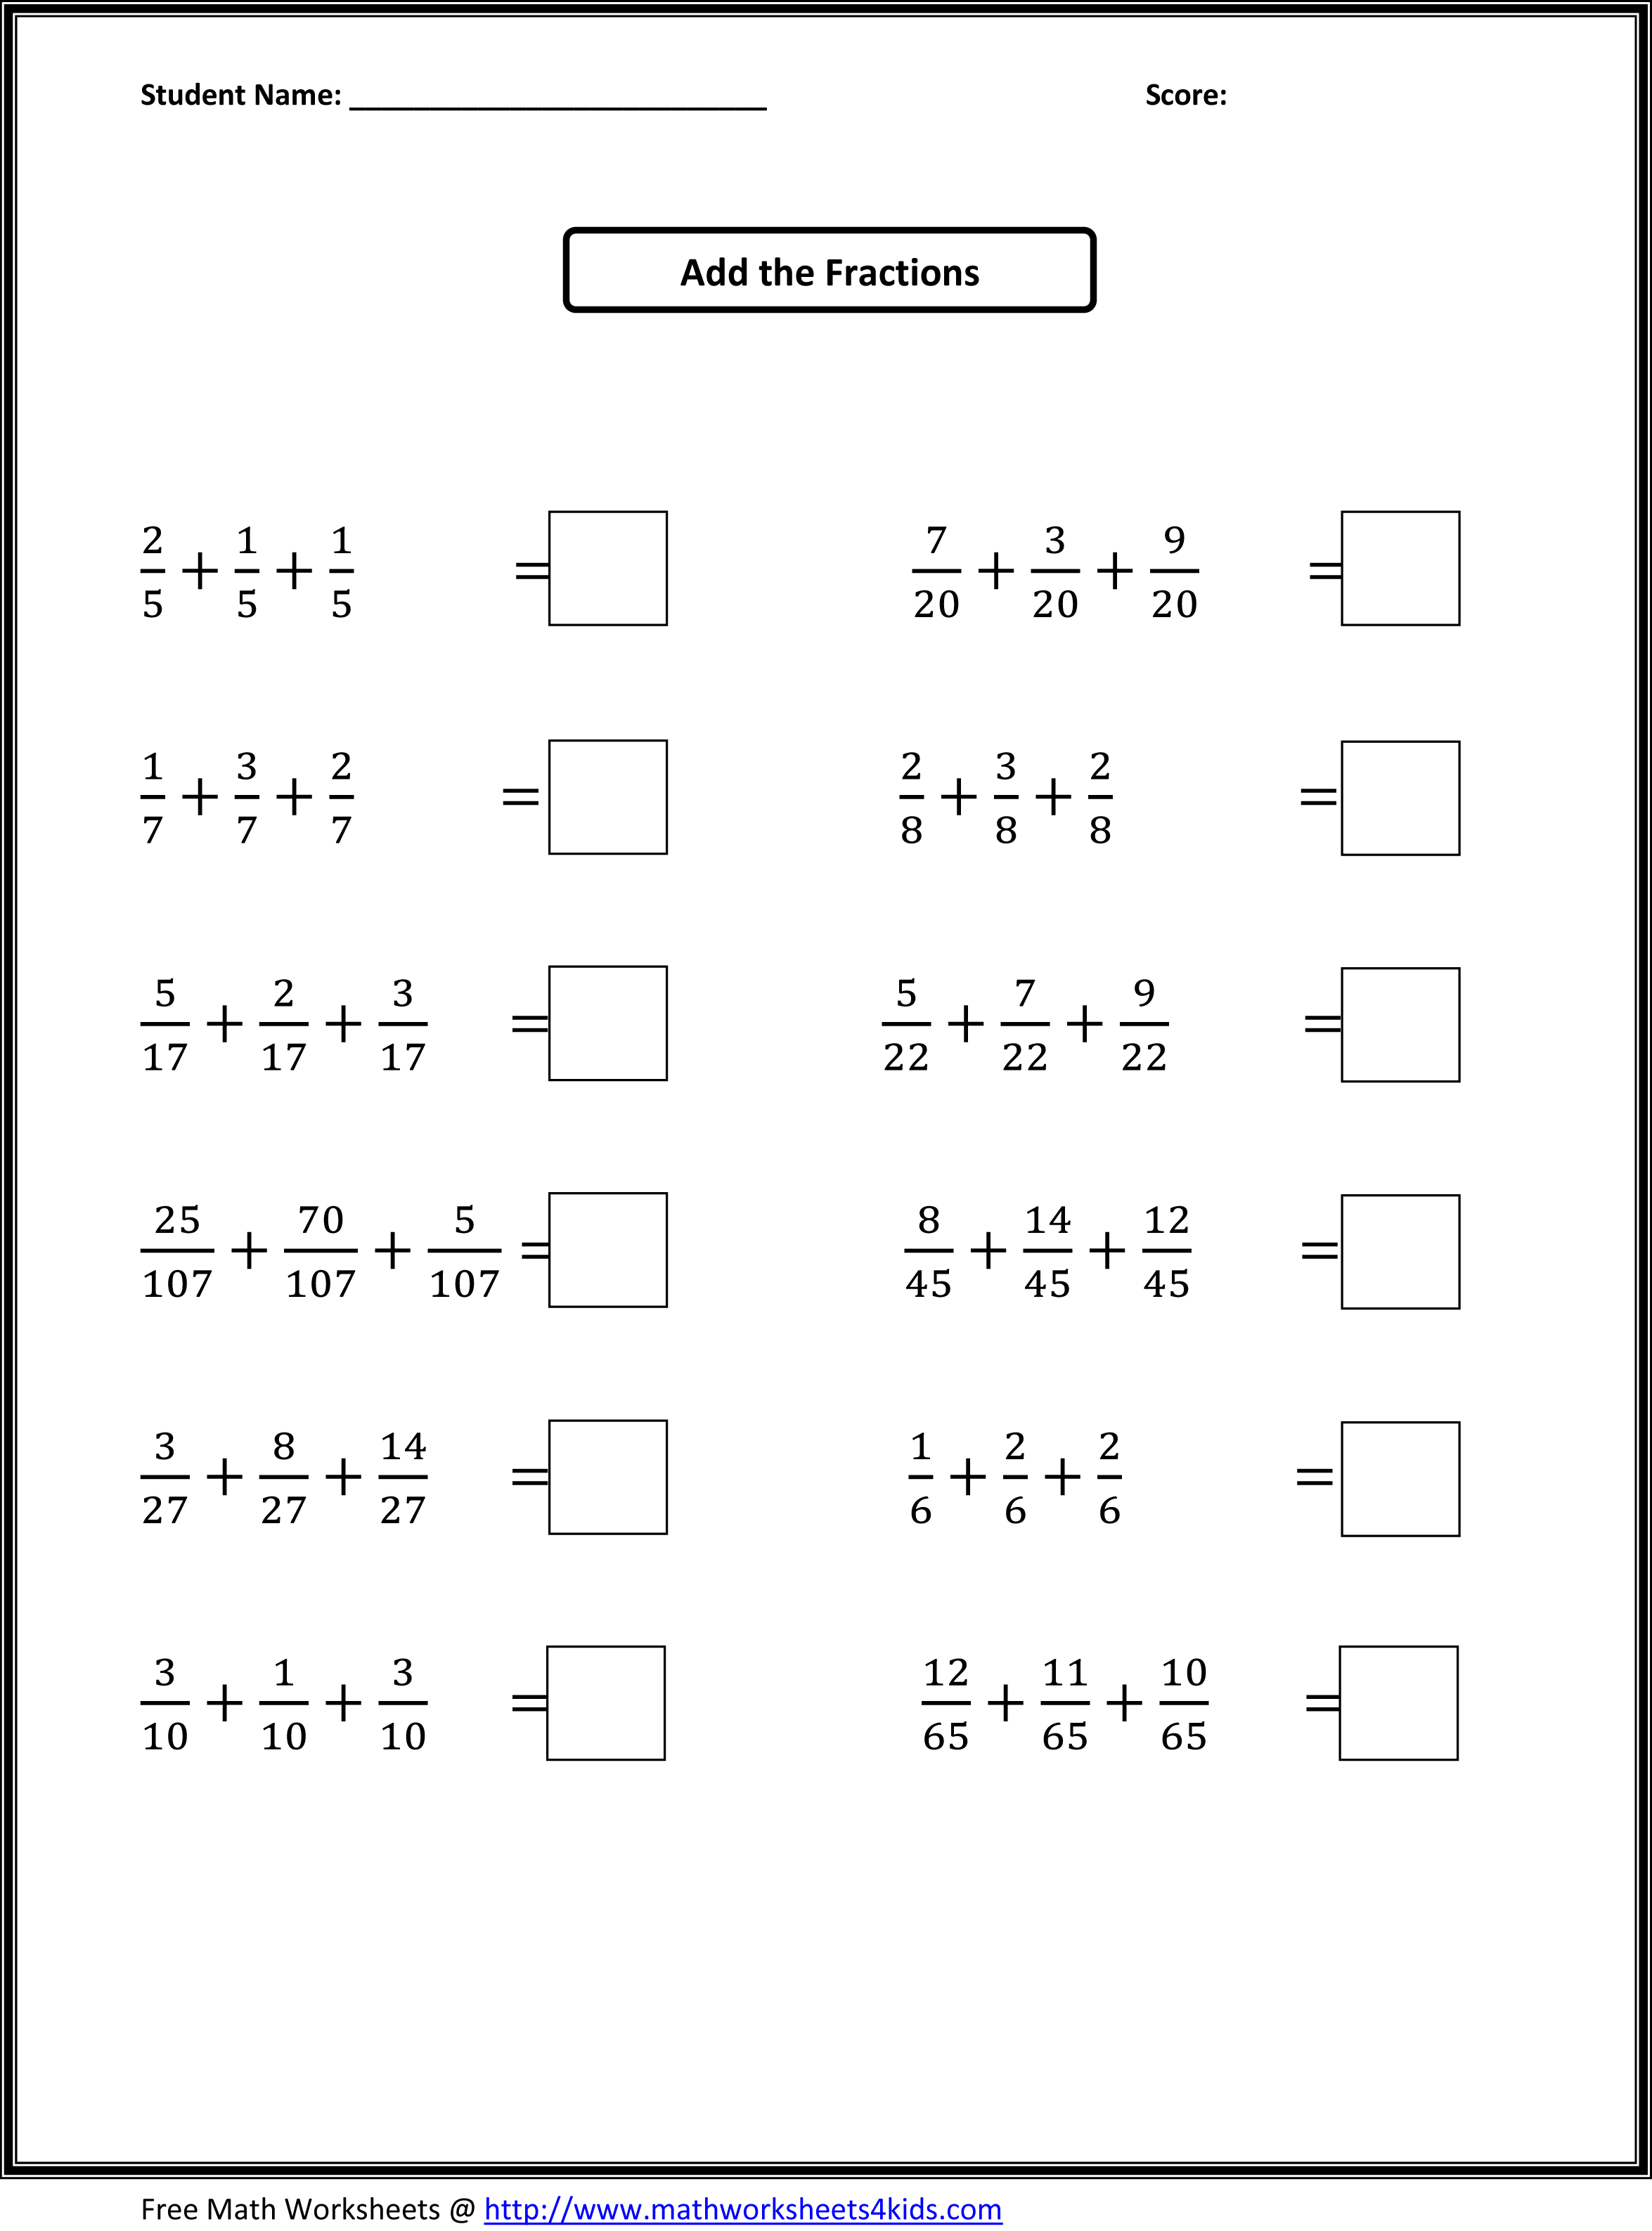 math worksheet : high quality equivalent fractions worksheets for 4th grade photos : Fraction Worksheets For 4th Grade